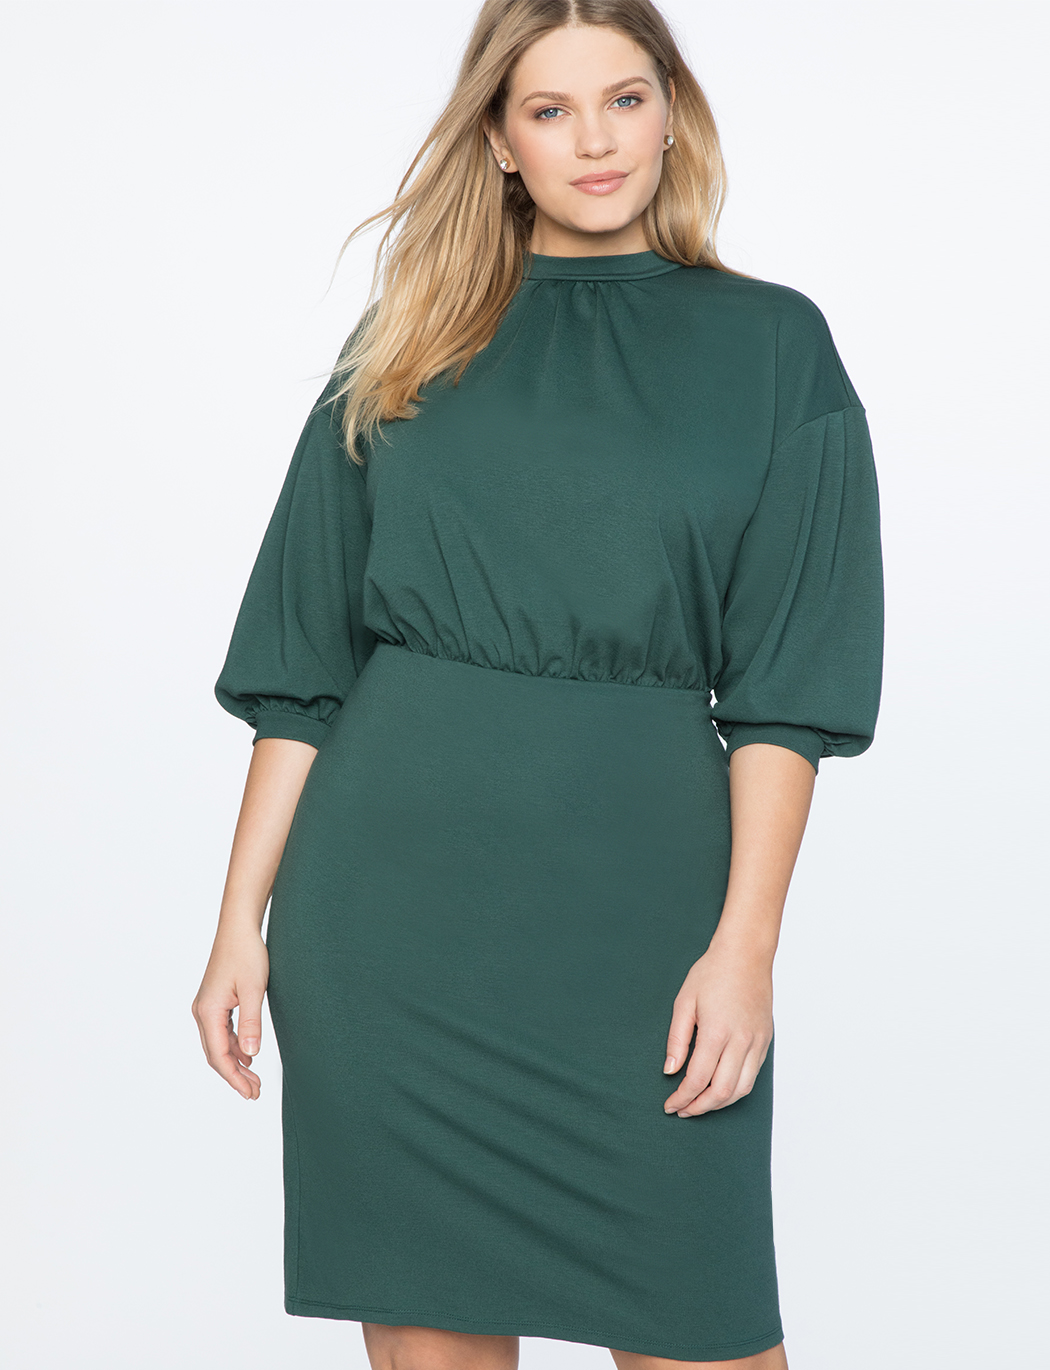 Puff Sleeve Tie Back Ponte Dress | Women\'s Plus Size Dresses | ELOQUII